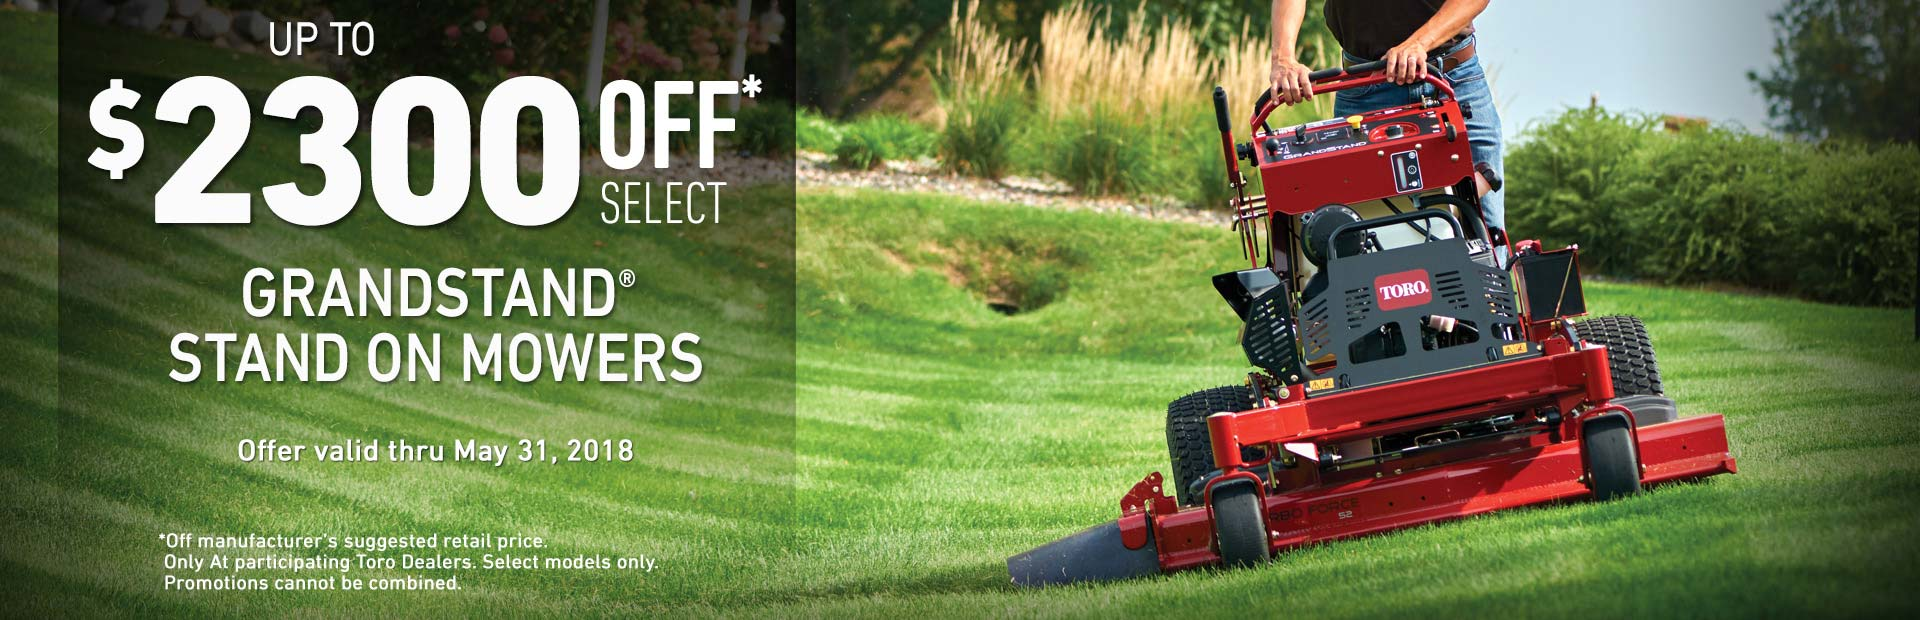 Toro: $2300 off MSRP on GrandStand